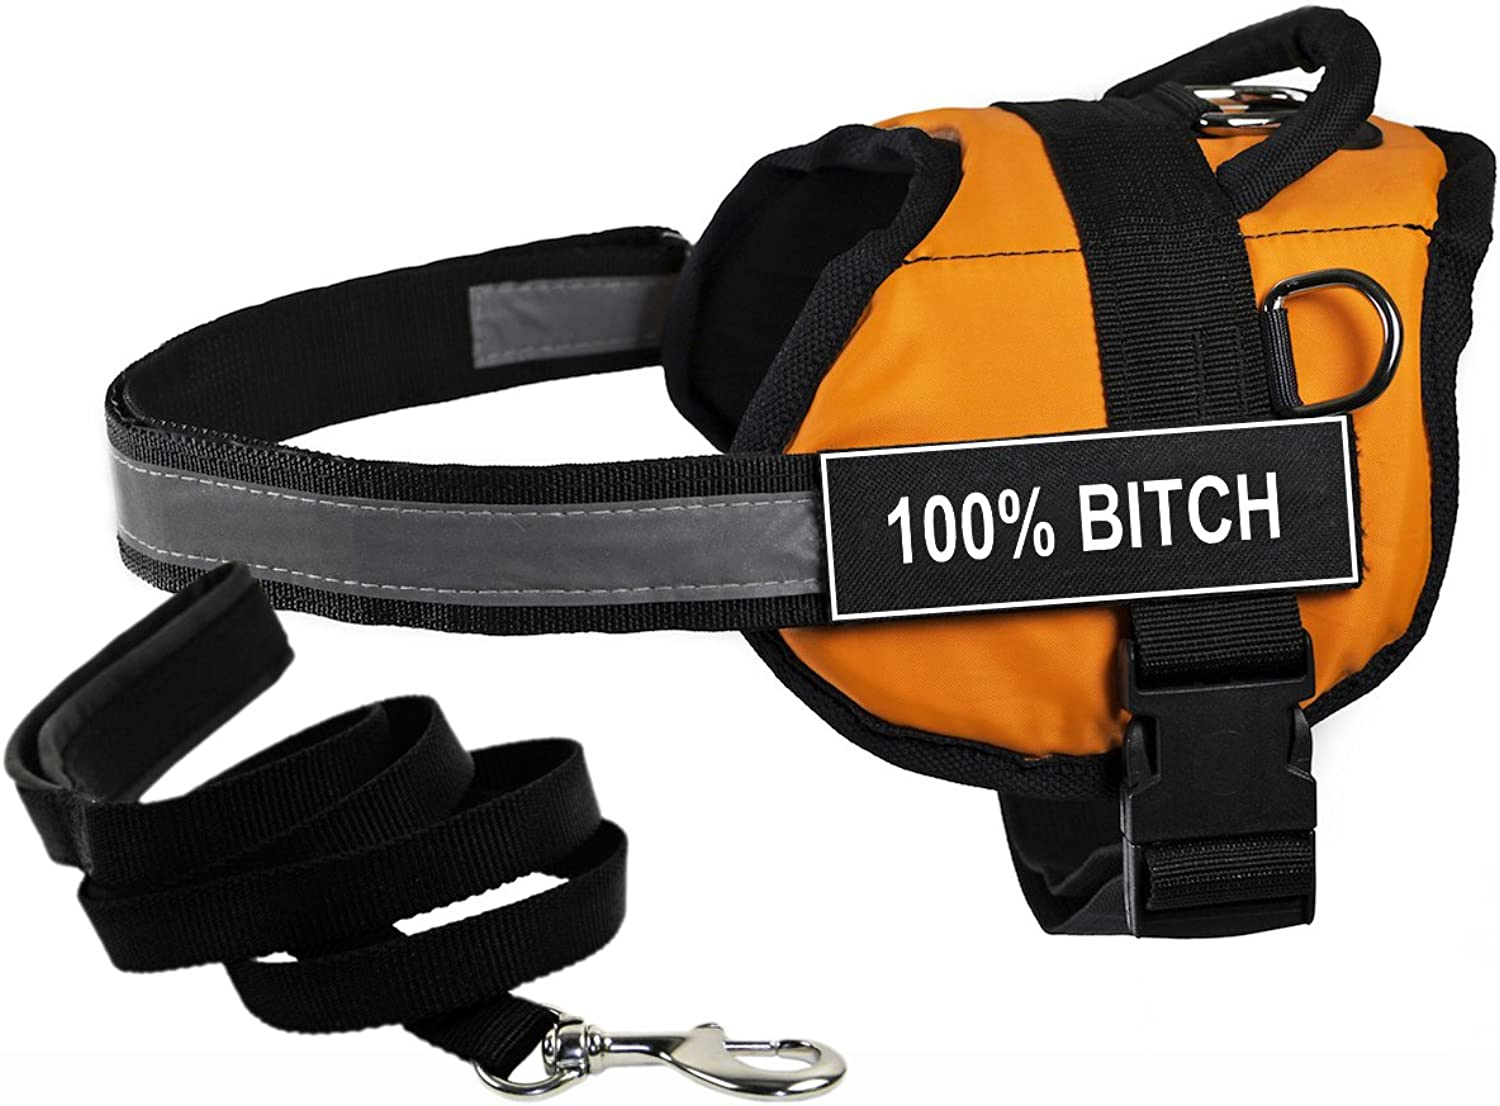 Dean & Tyler's DT Works orange 100% BITCH Harness with Chest Padding, XSmall, and Black 6 ft Padded Puppy Leash.